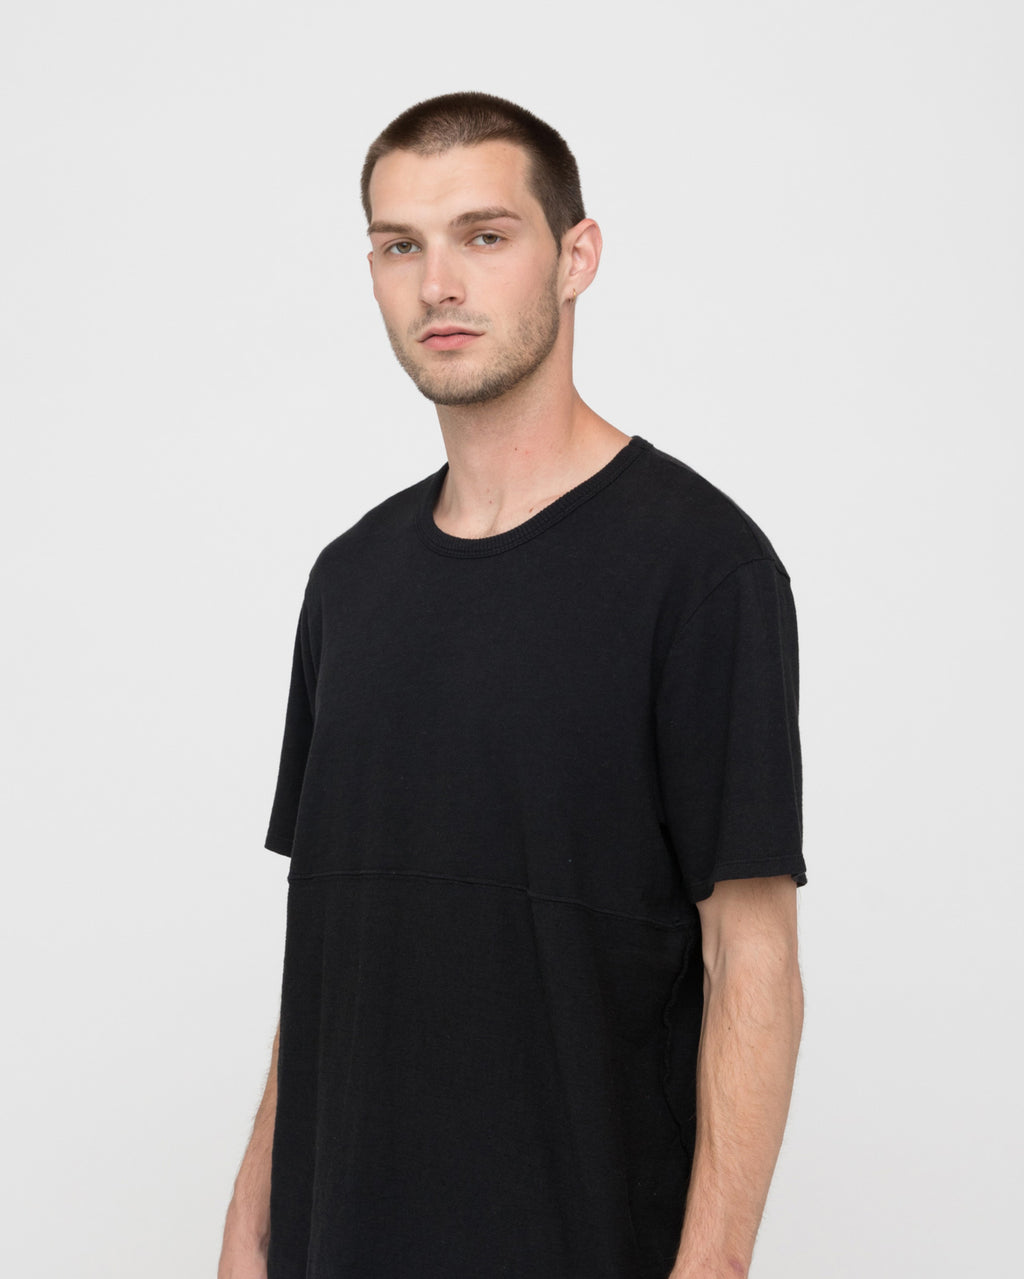 The Oria Tee in Black